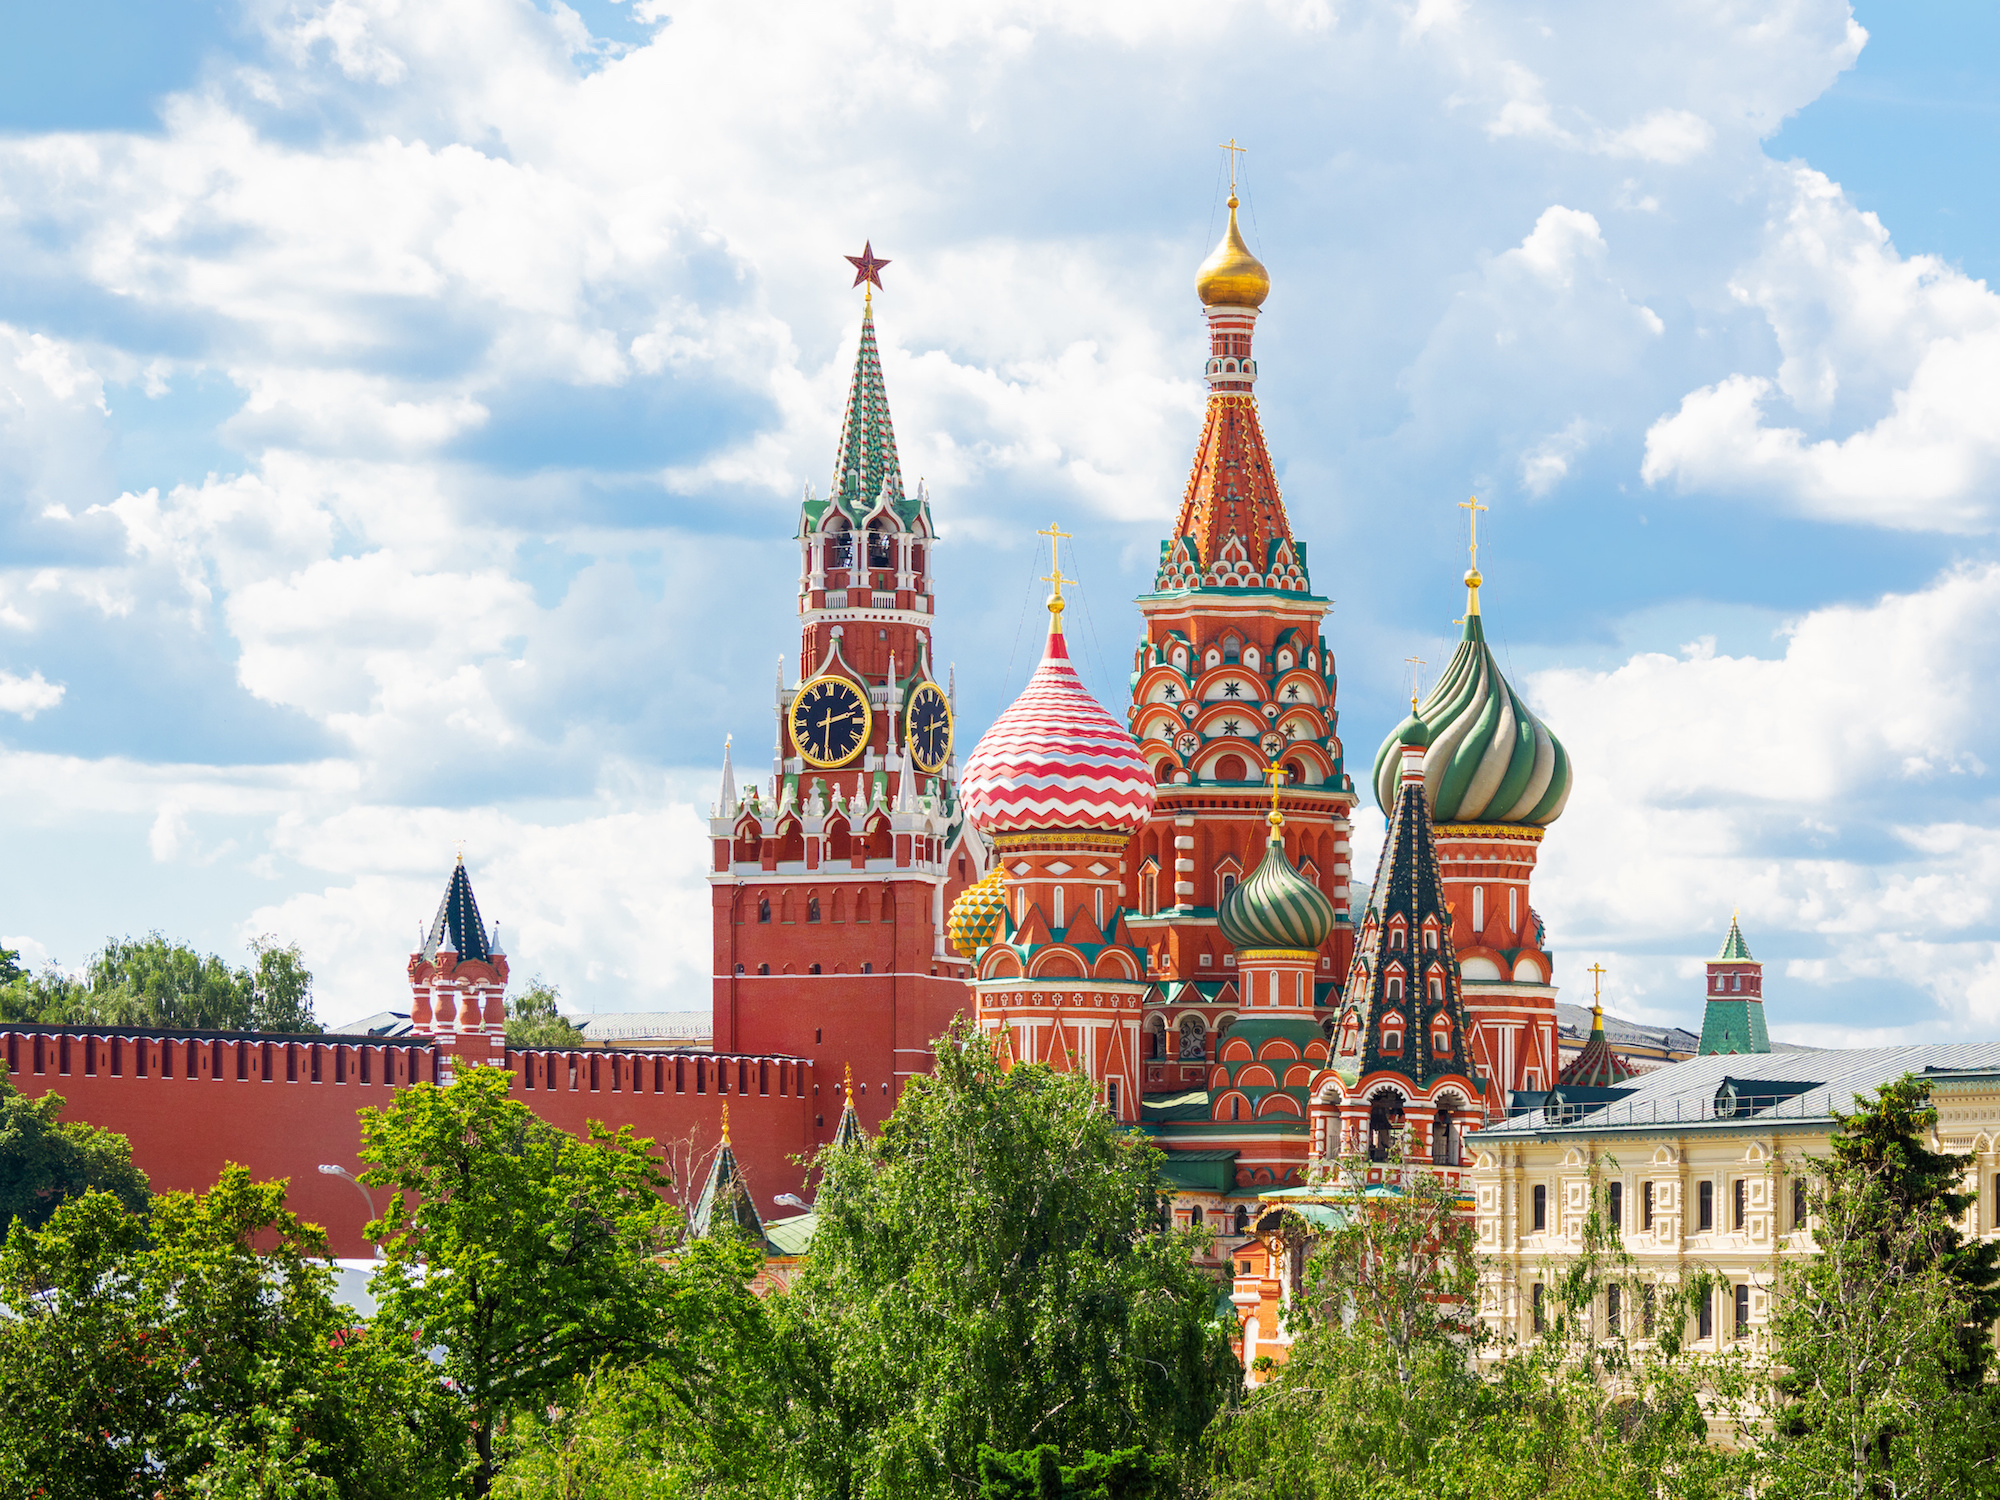 View on Saint Basil Cathedral and Spasskaya tower of Kremlin from Zaryadye park. Famous landmarks in sunny summer day. Moscow, Russia.